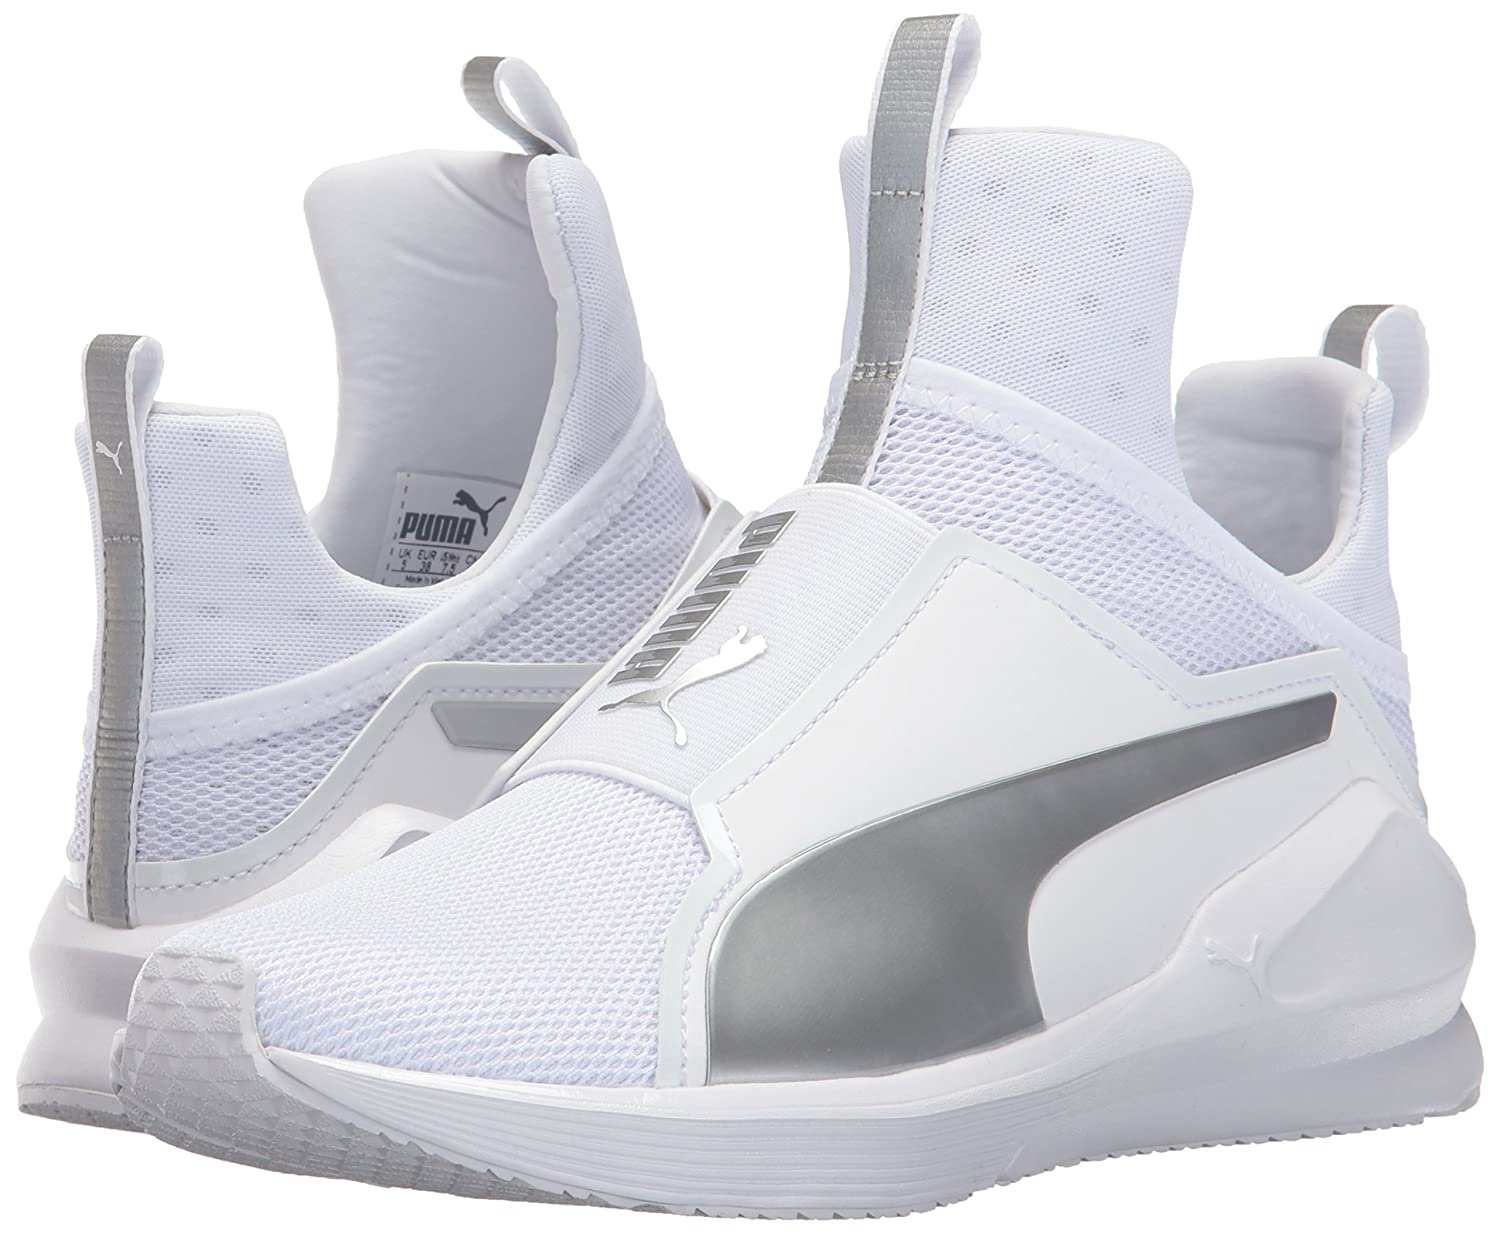 PUMA Women's Fierce Core Cross-Trainer Shoe B01MSZOM5T 10 B(M) US|Puma White-puma Silver